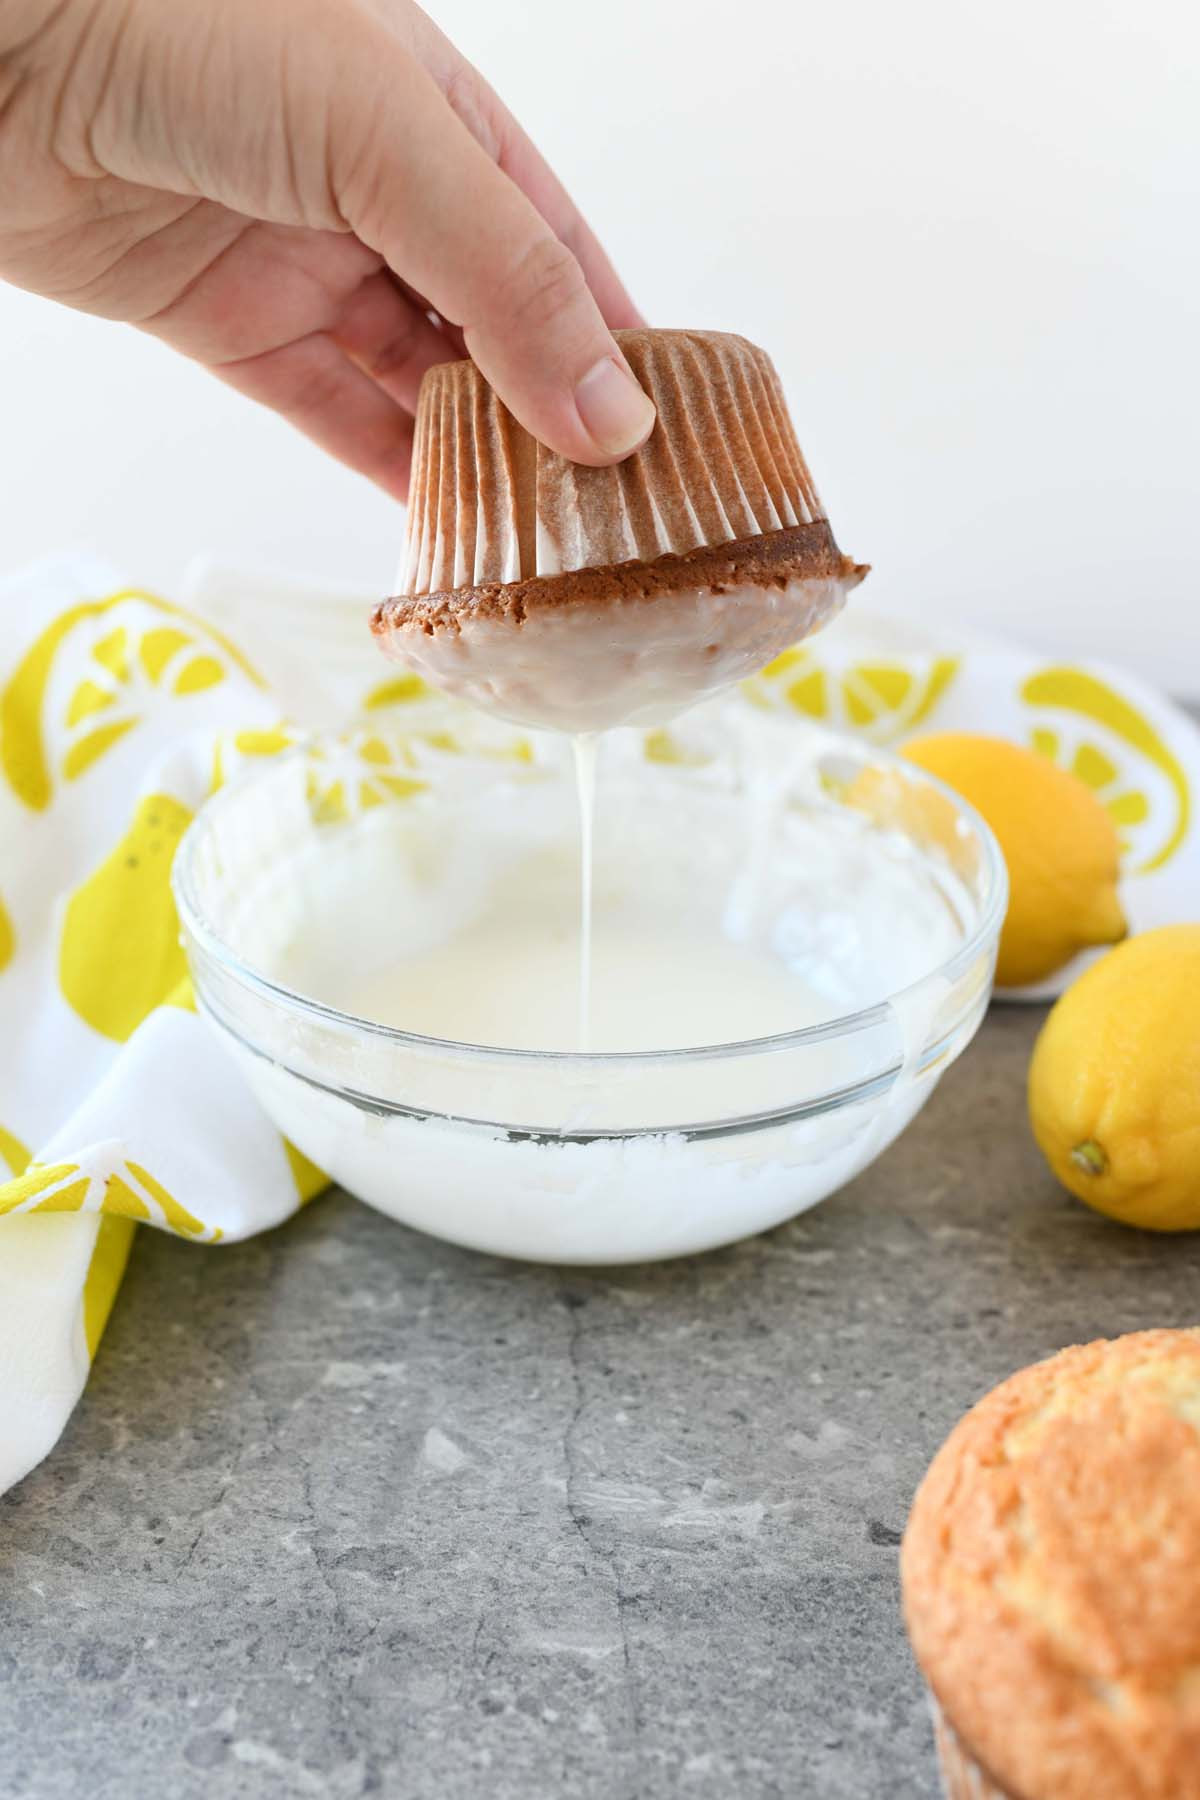 Iced Lemon Muffins Recipe. A plain lemon cupcake being dipped into icing.